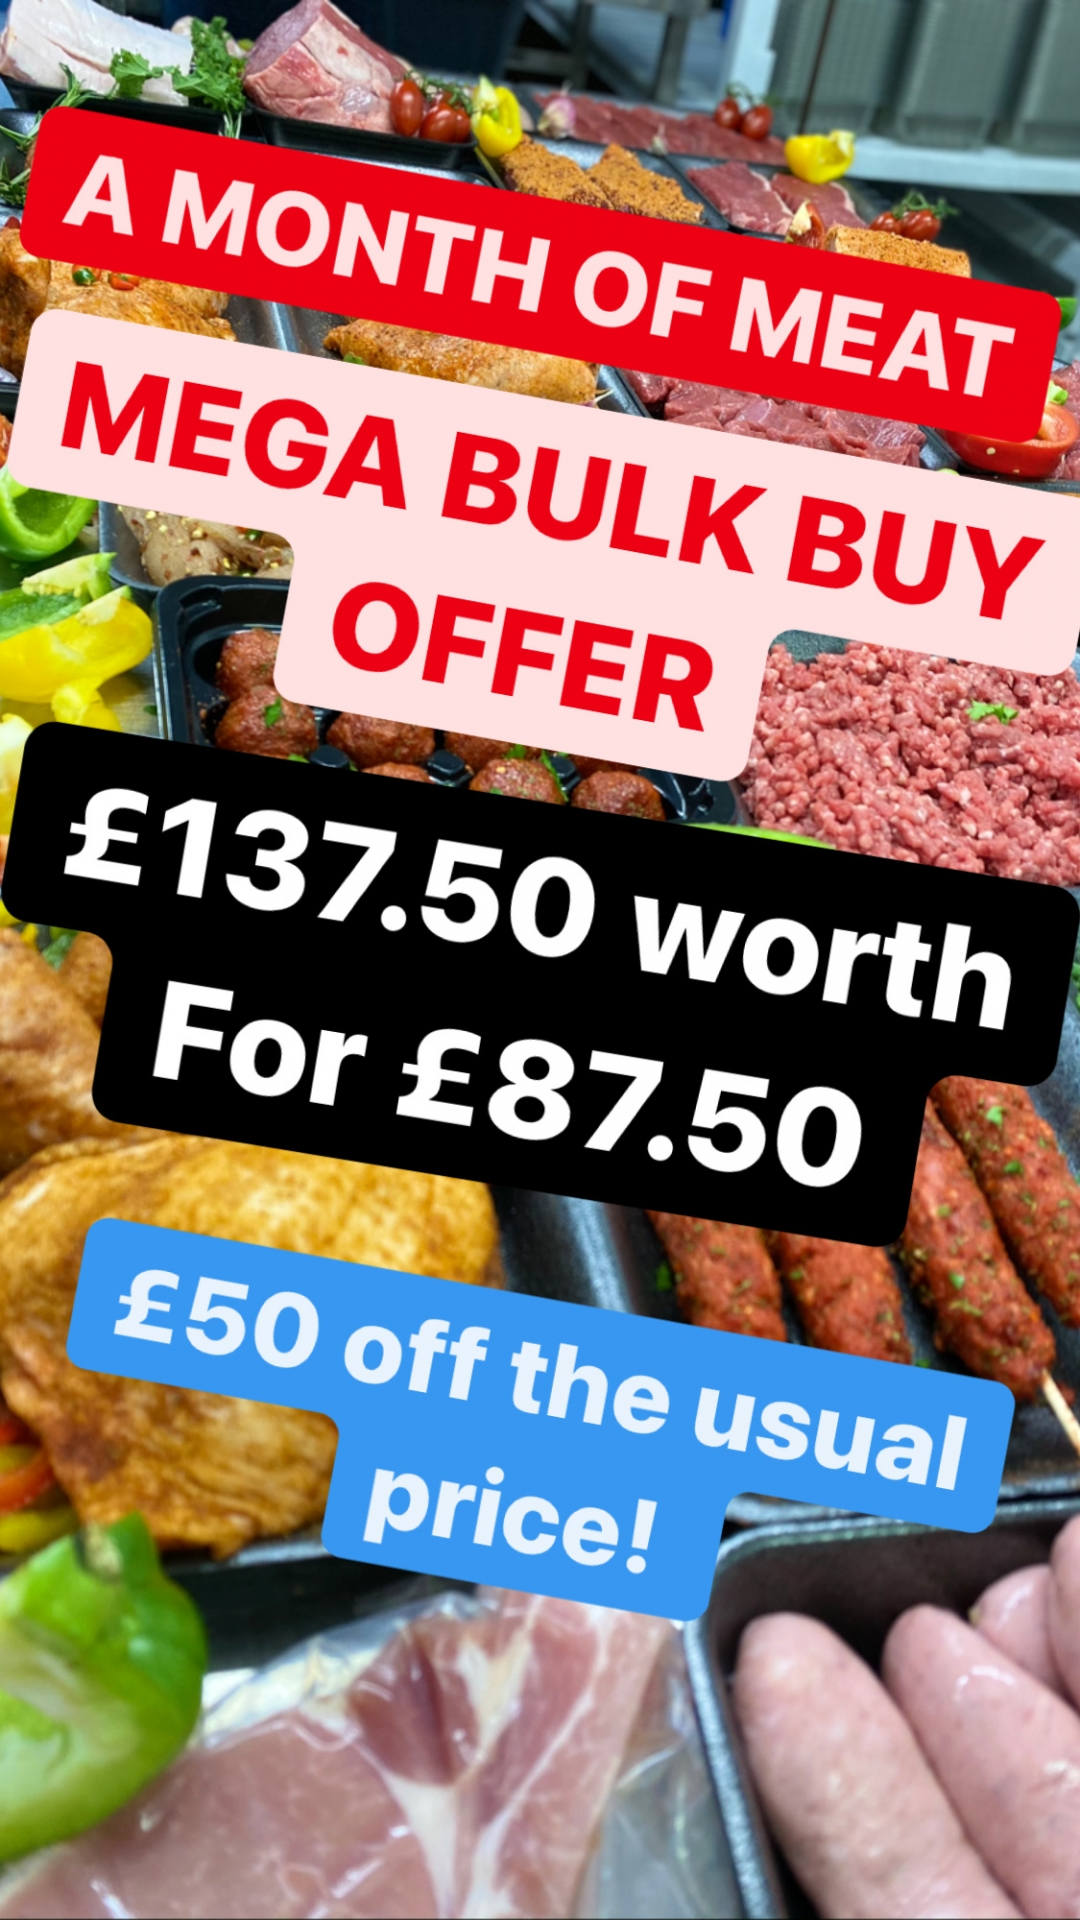 A MONTH OF MEAT £137.50 FOR £87.50